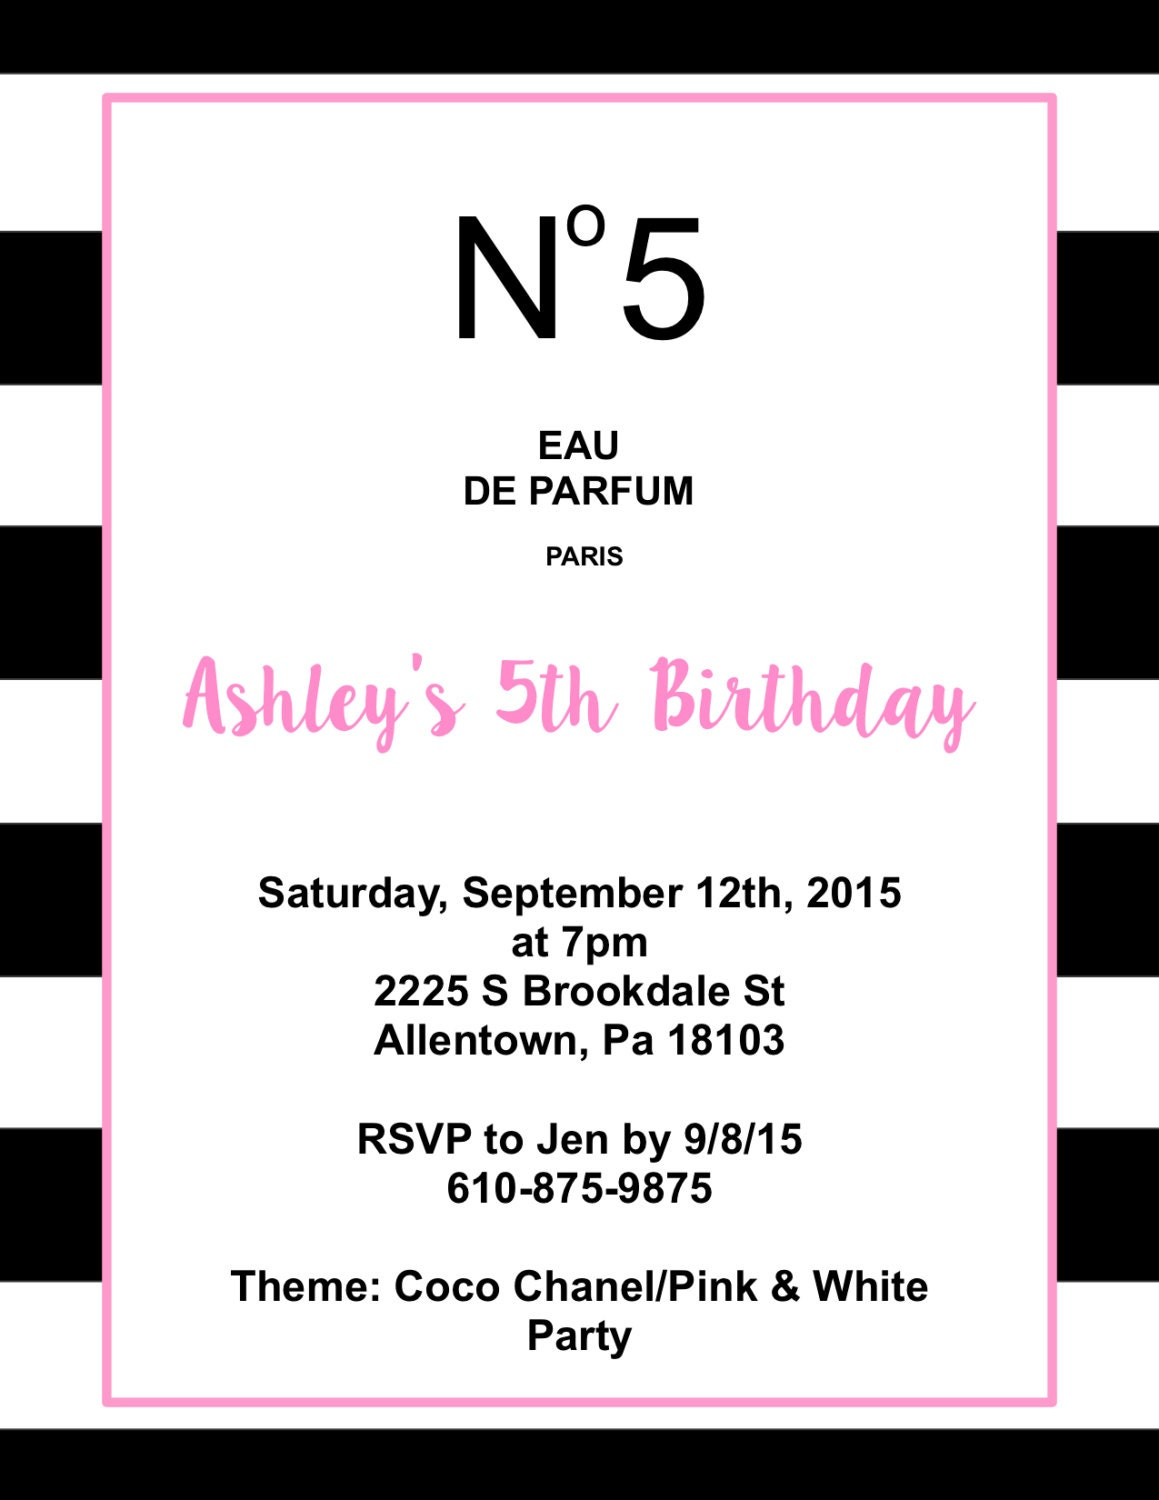 Coco Chanel Inspired Party Invitation Digital